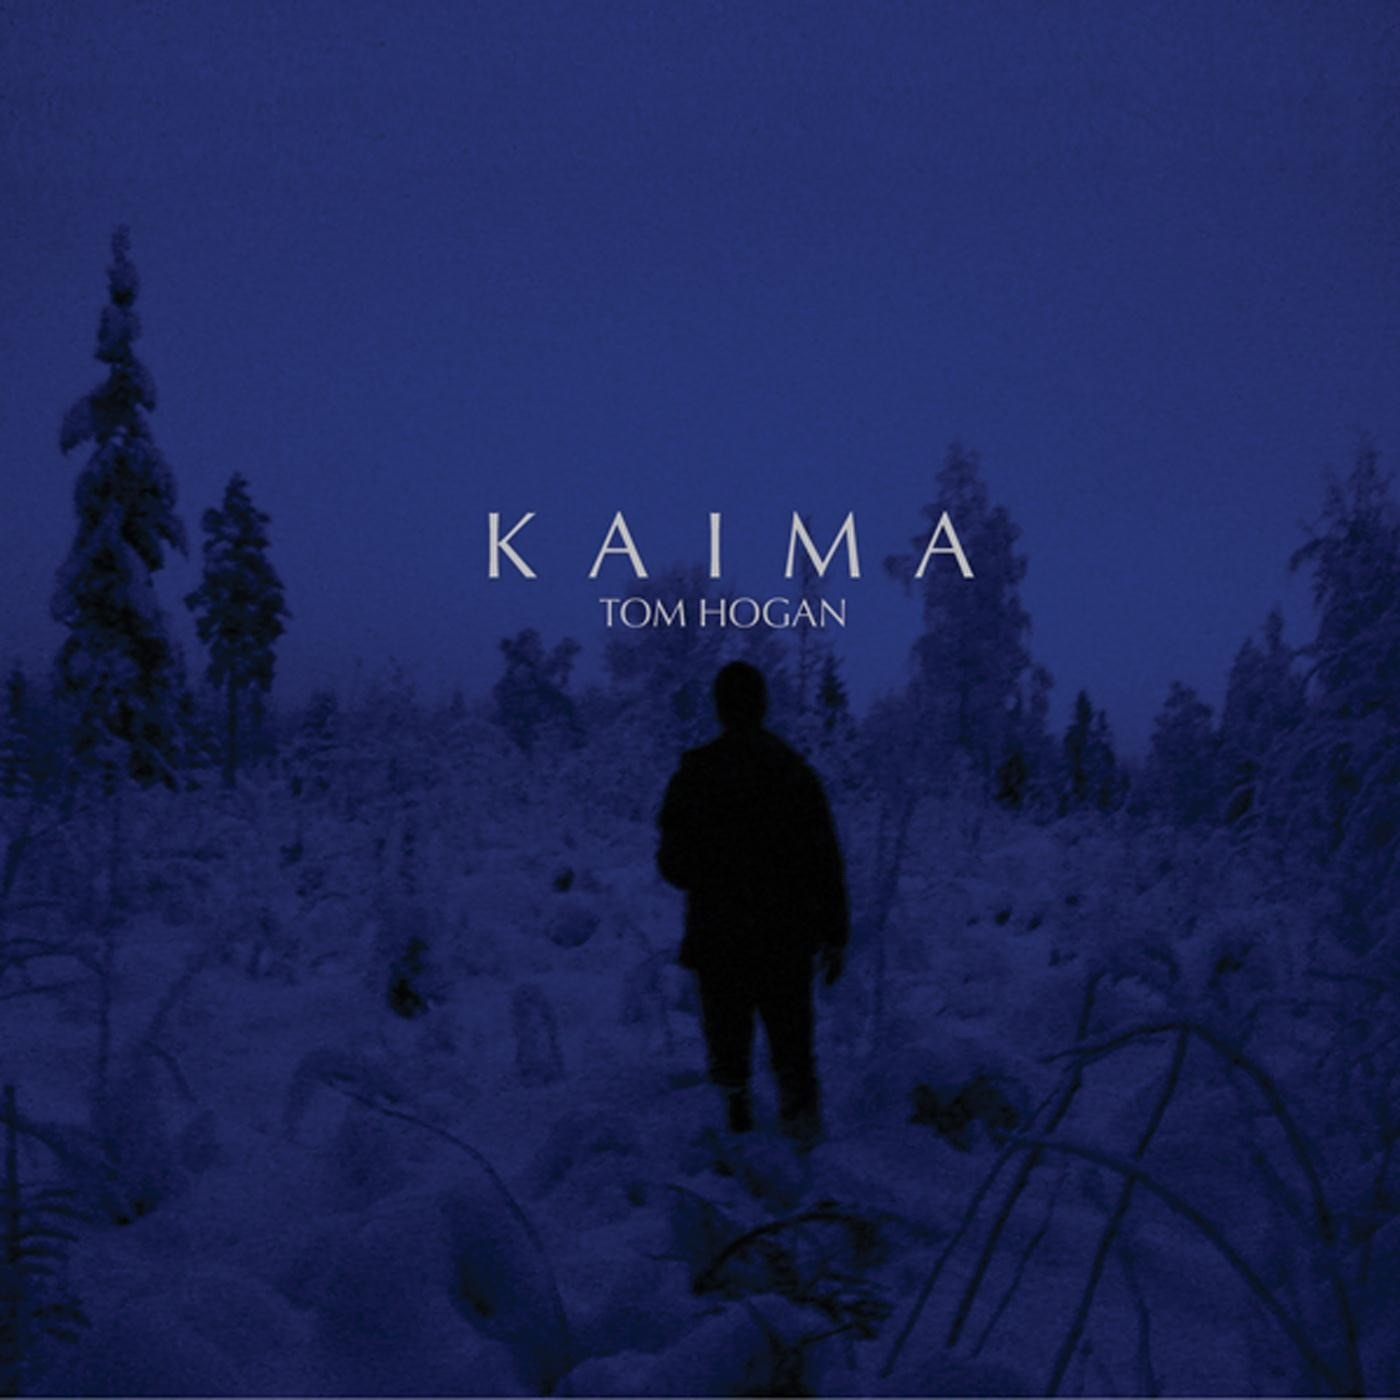 MP3 Songs Online:♫ Minus 15 #2 - Tom Hogan album Kaima. Jazz,Music listen to music online free without downloading.